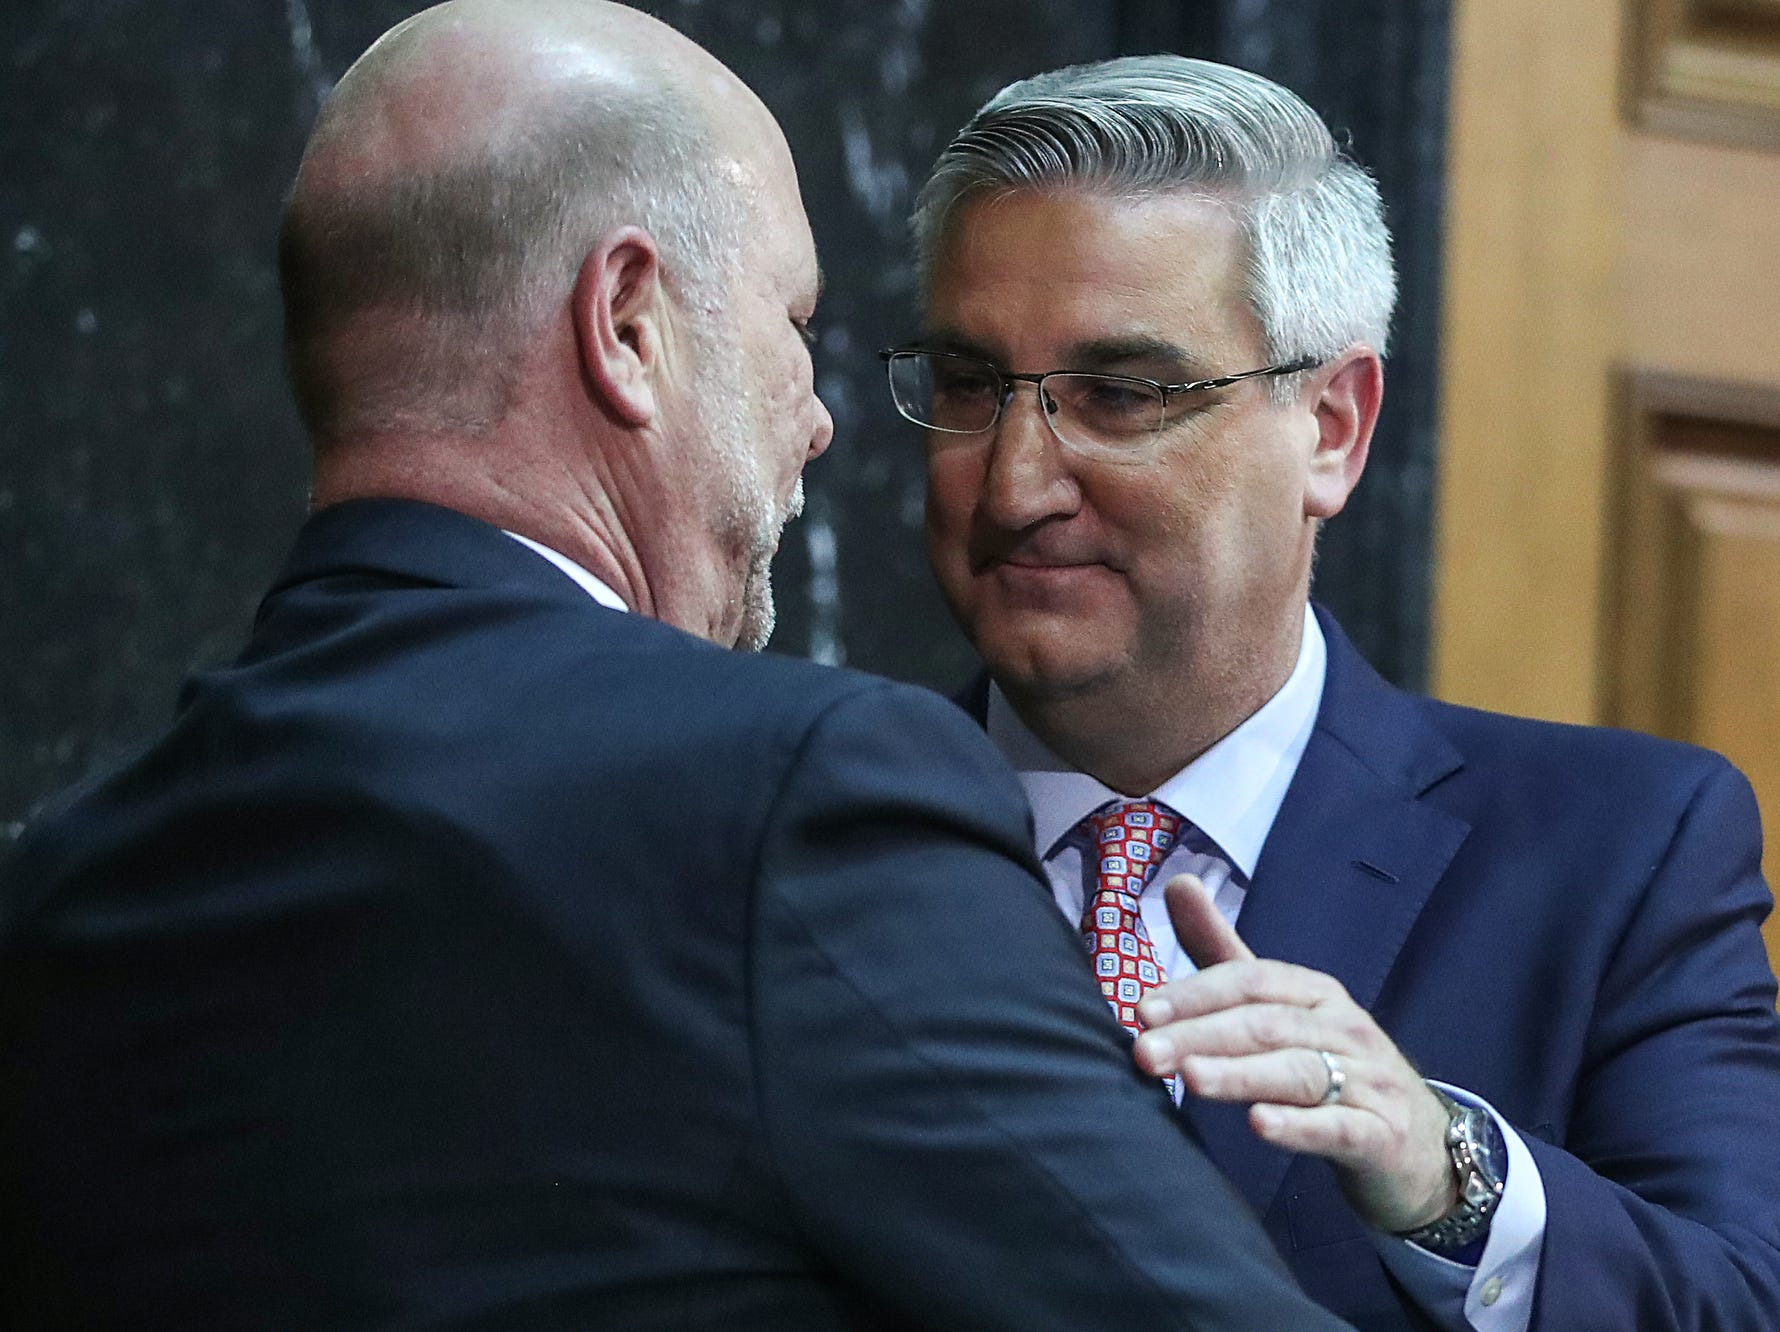 Gov. Eric Holcomb greets Speaker of the House Brian Bosma after delivering the annual State of the State address to the Indiana General Assembly at the Indiana Statehouse in Indianapolis, Tuesday, Jan. 15, 2019.